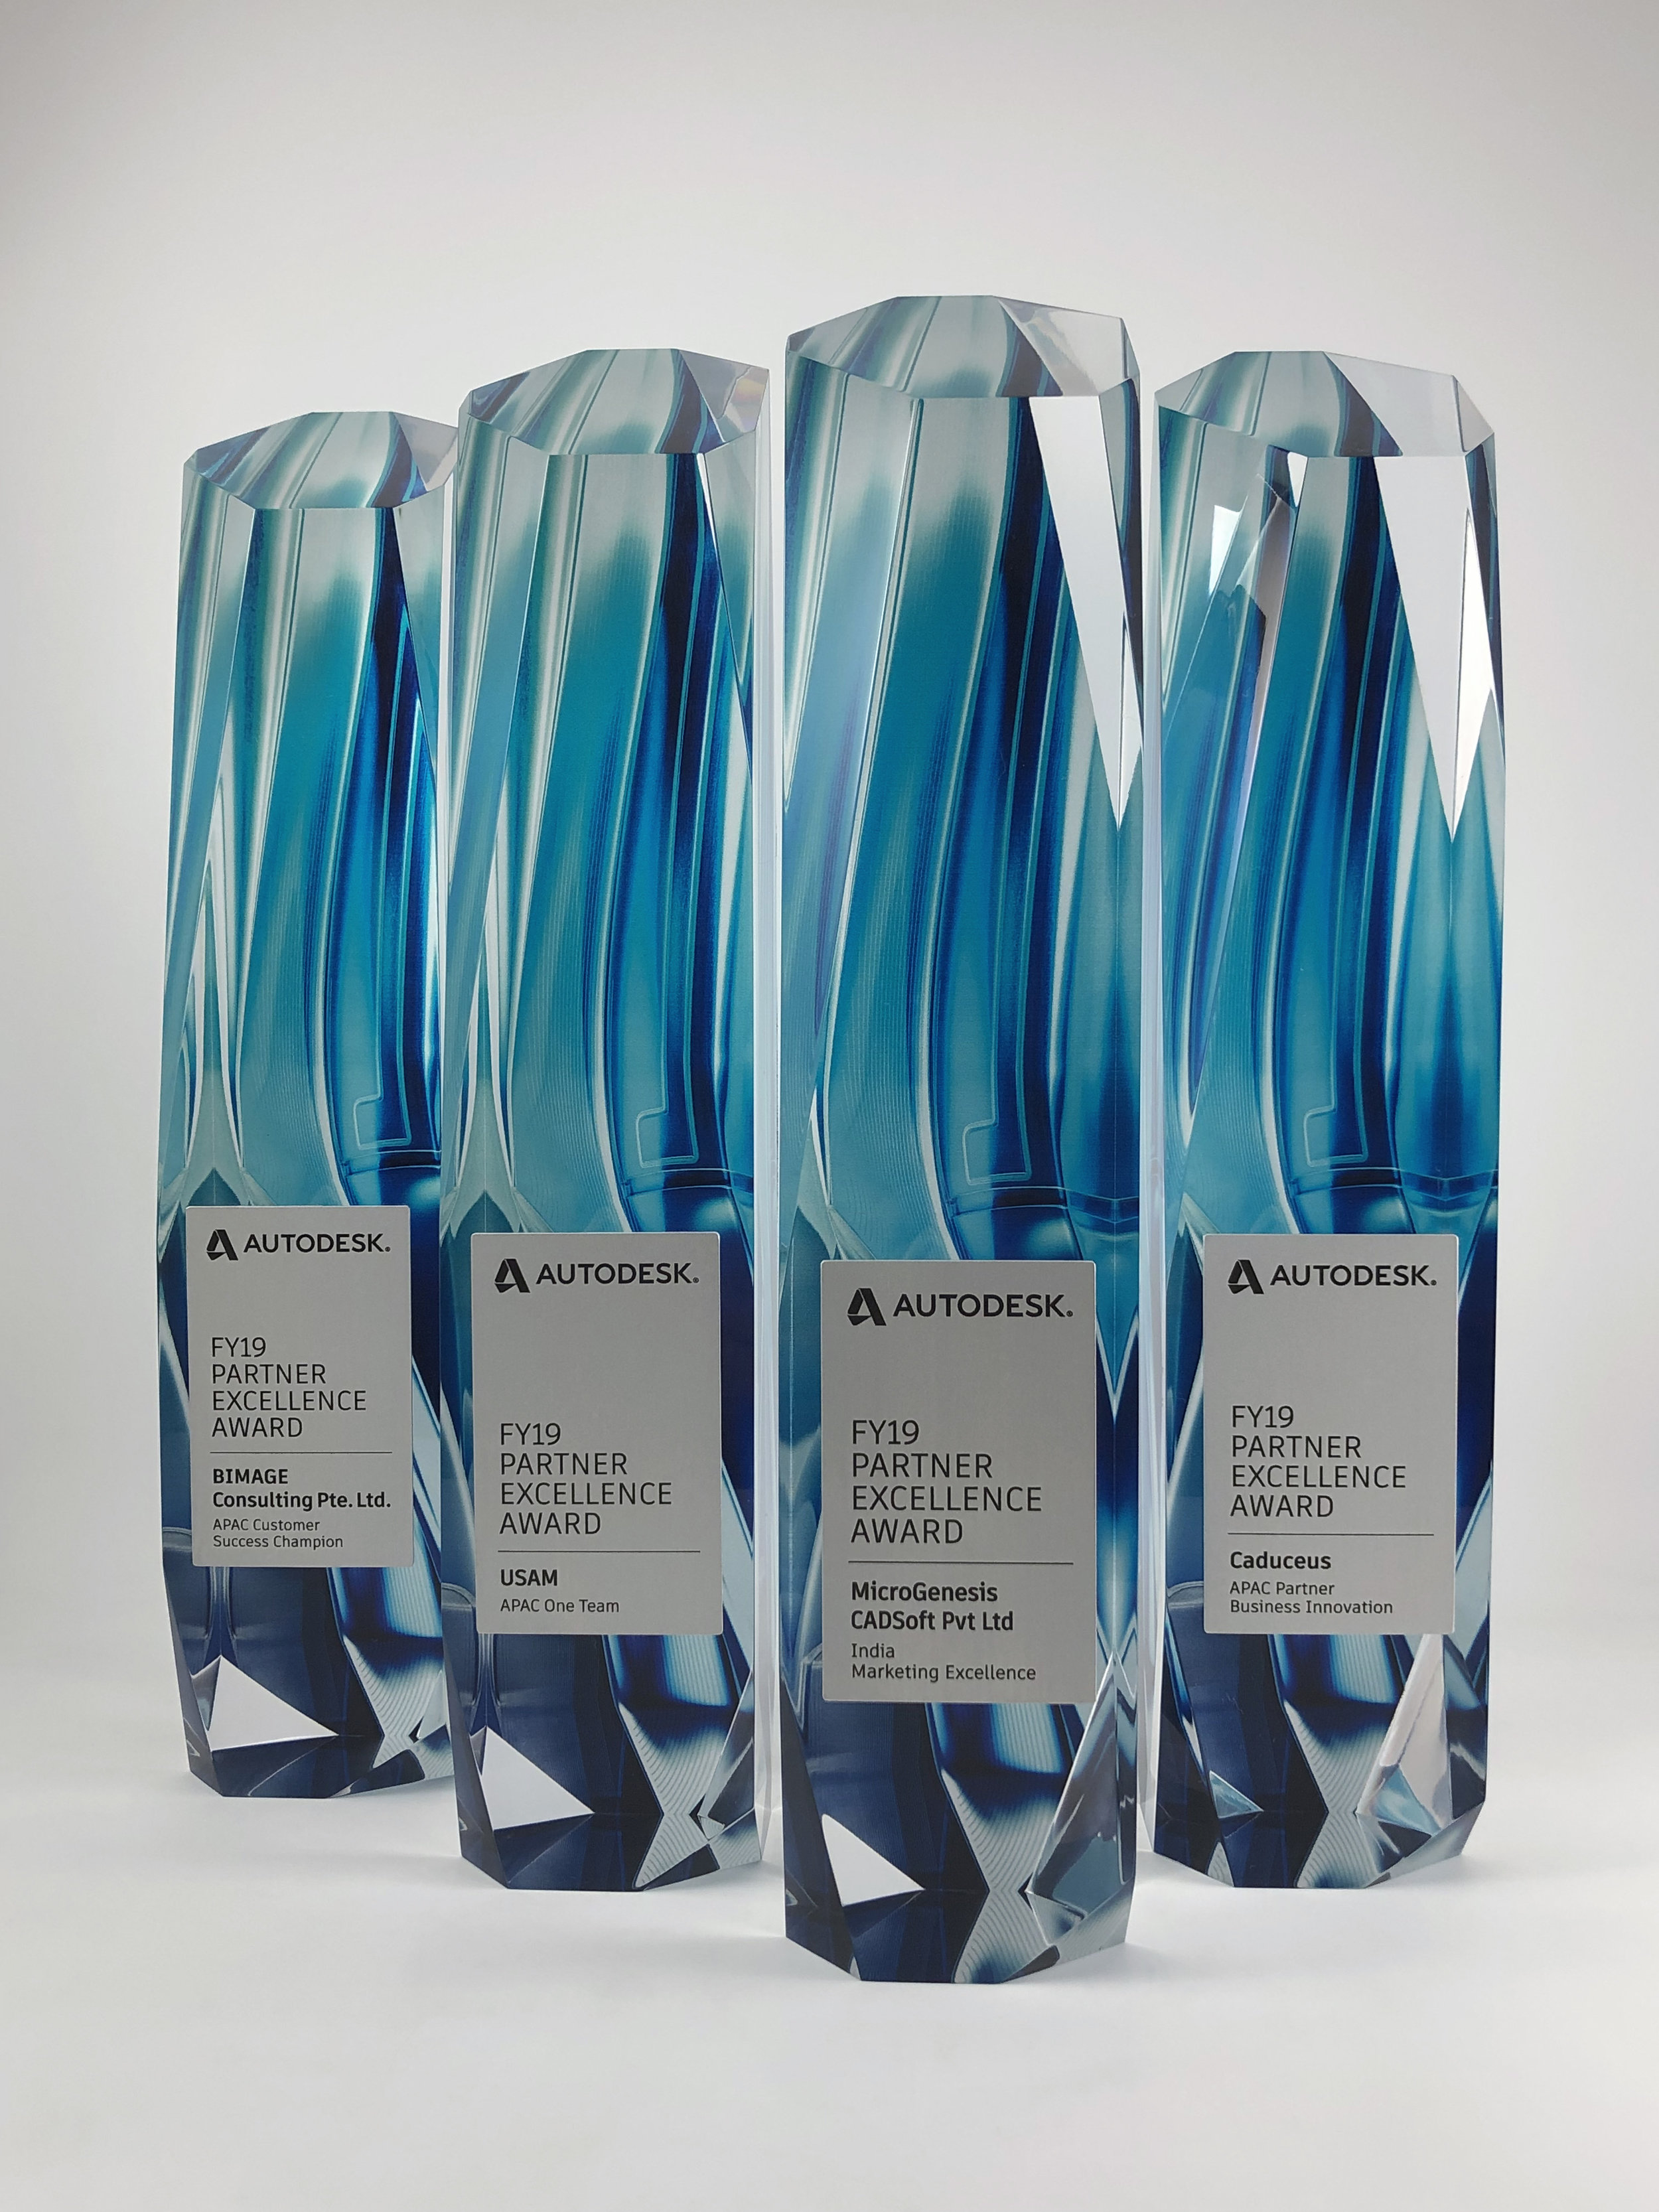 autodesck-apac-partner-excellence-awards-acrylic-graphic-art-trophy-05.jpg